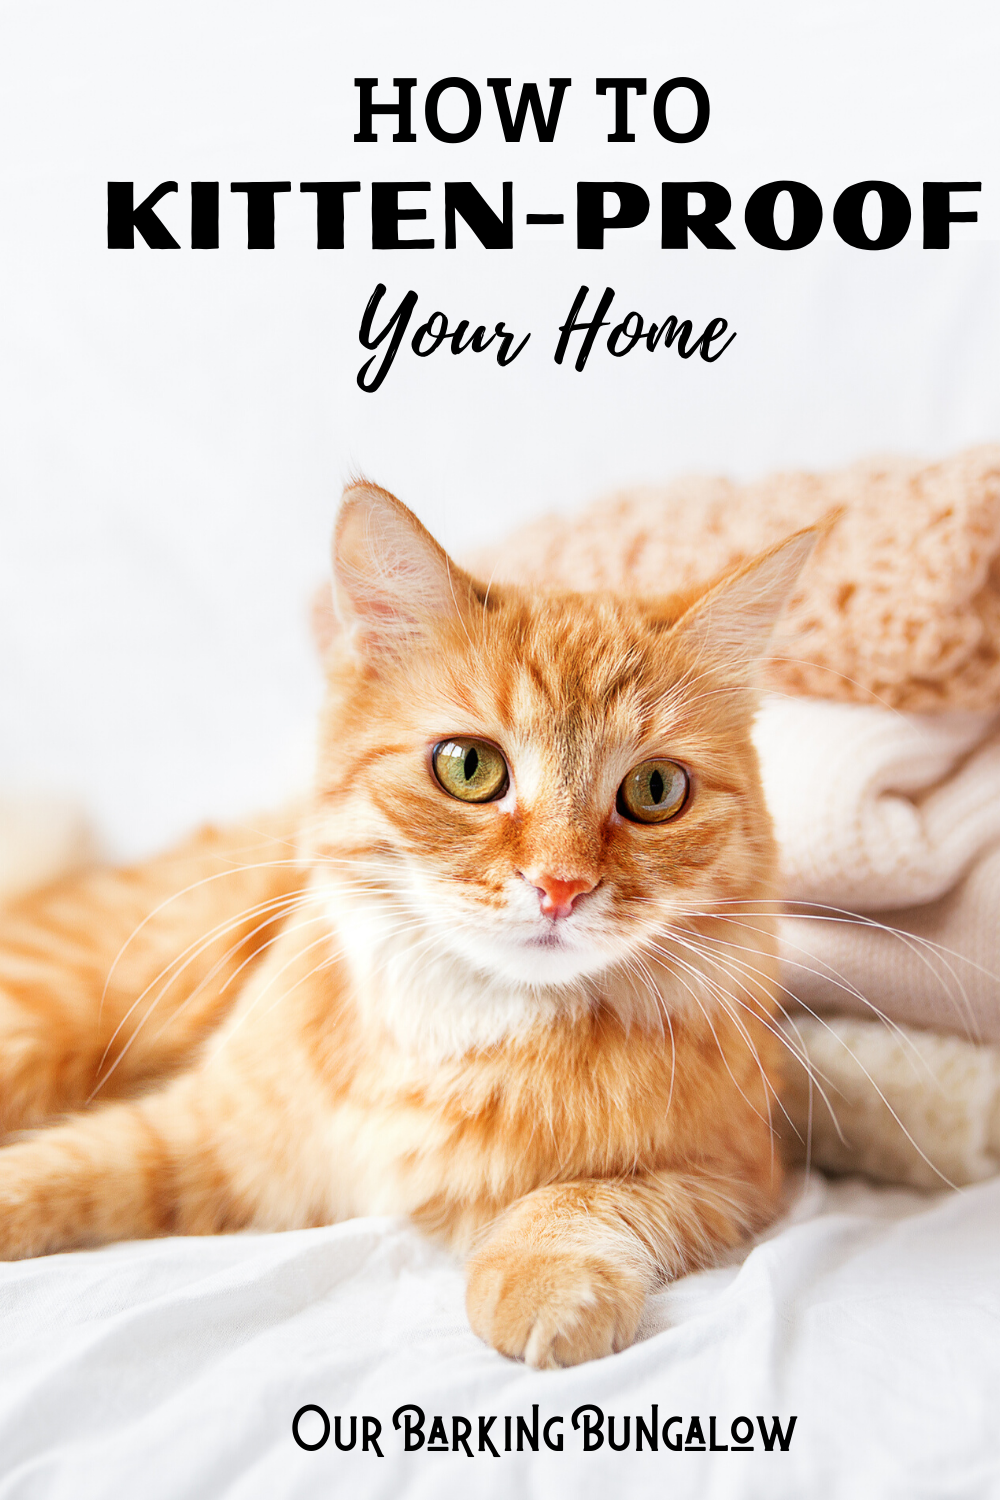 How To Kitten Proof Your Home Our Barking Bungalow In 2020 Kitten Proofing Sleeping Kitten Cat Proofing